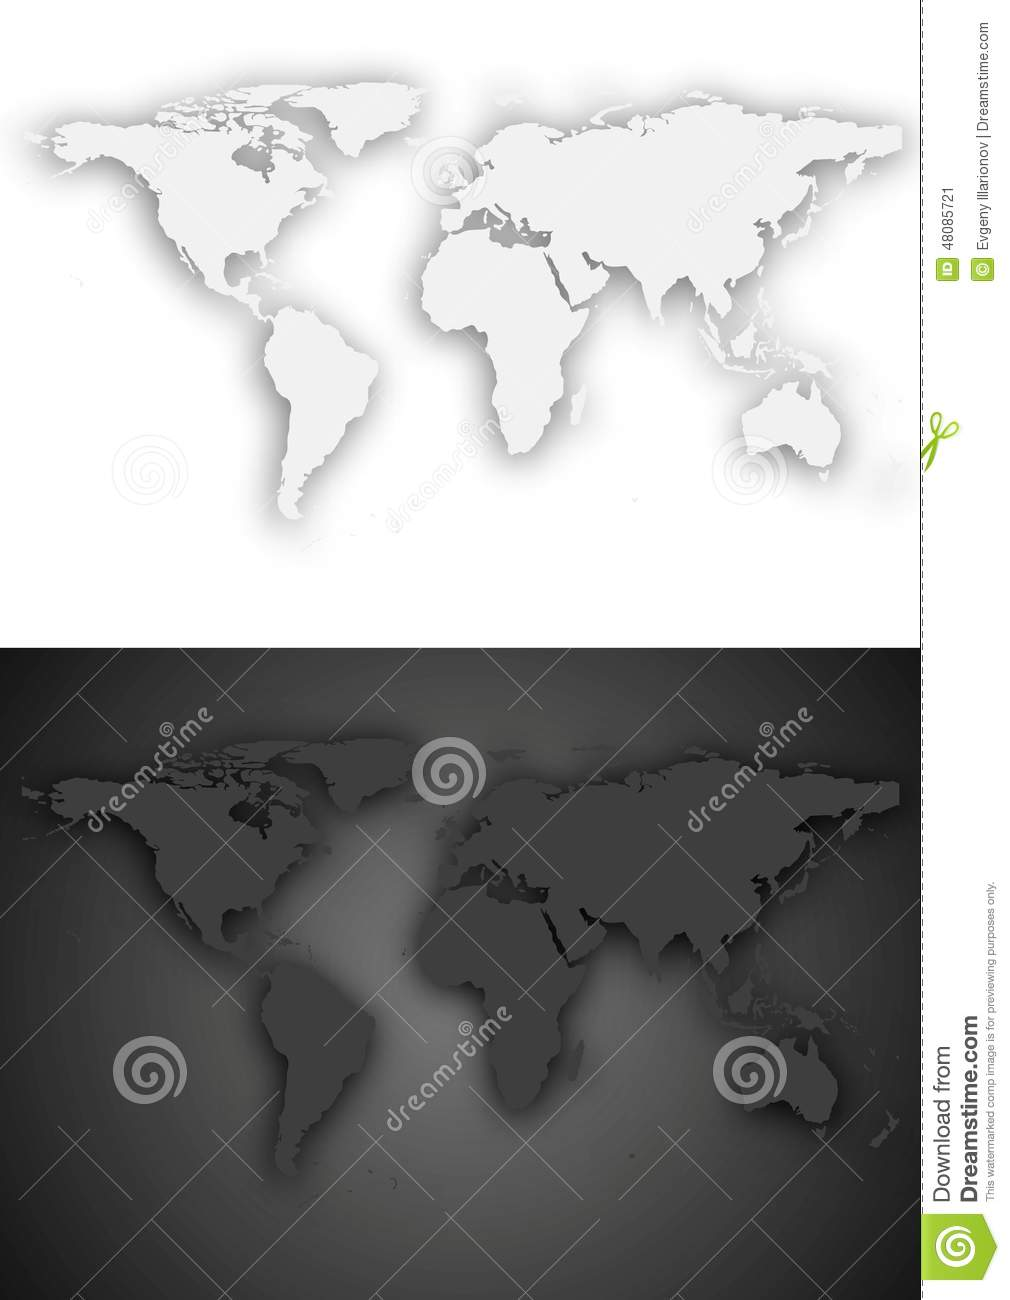 Dark and light grey vector world map design stock vector dark and light grey vector world map design gumiabroncs Choice Image